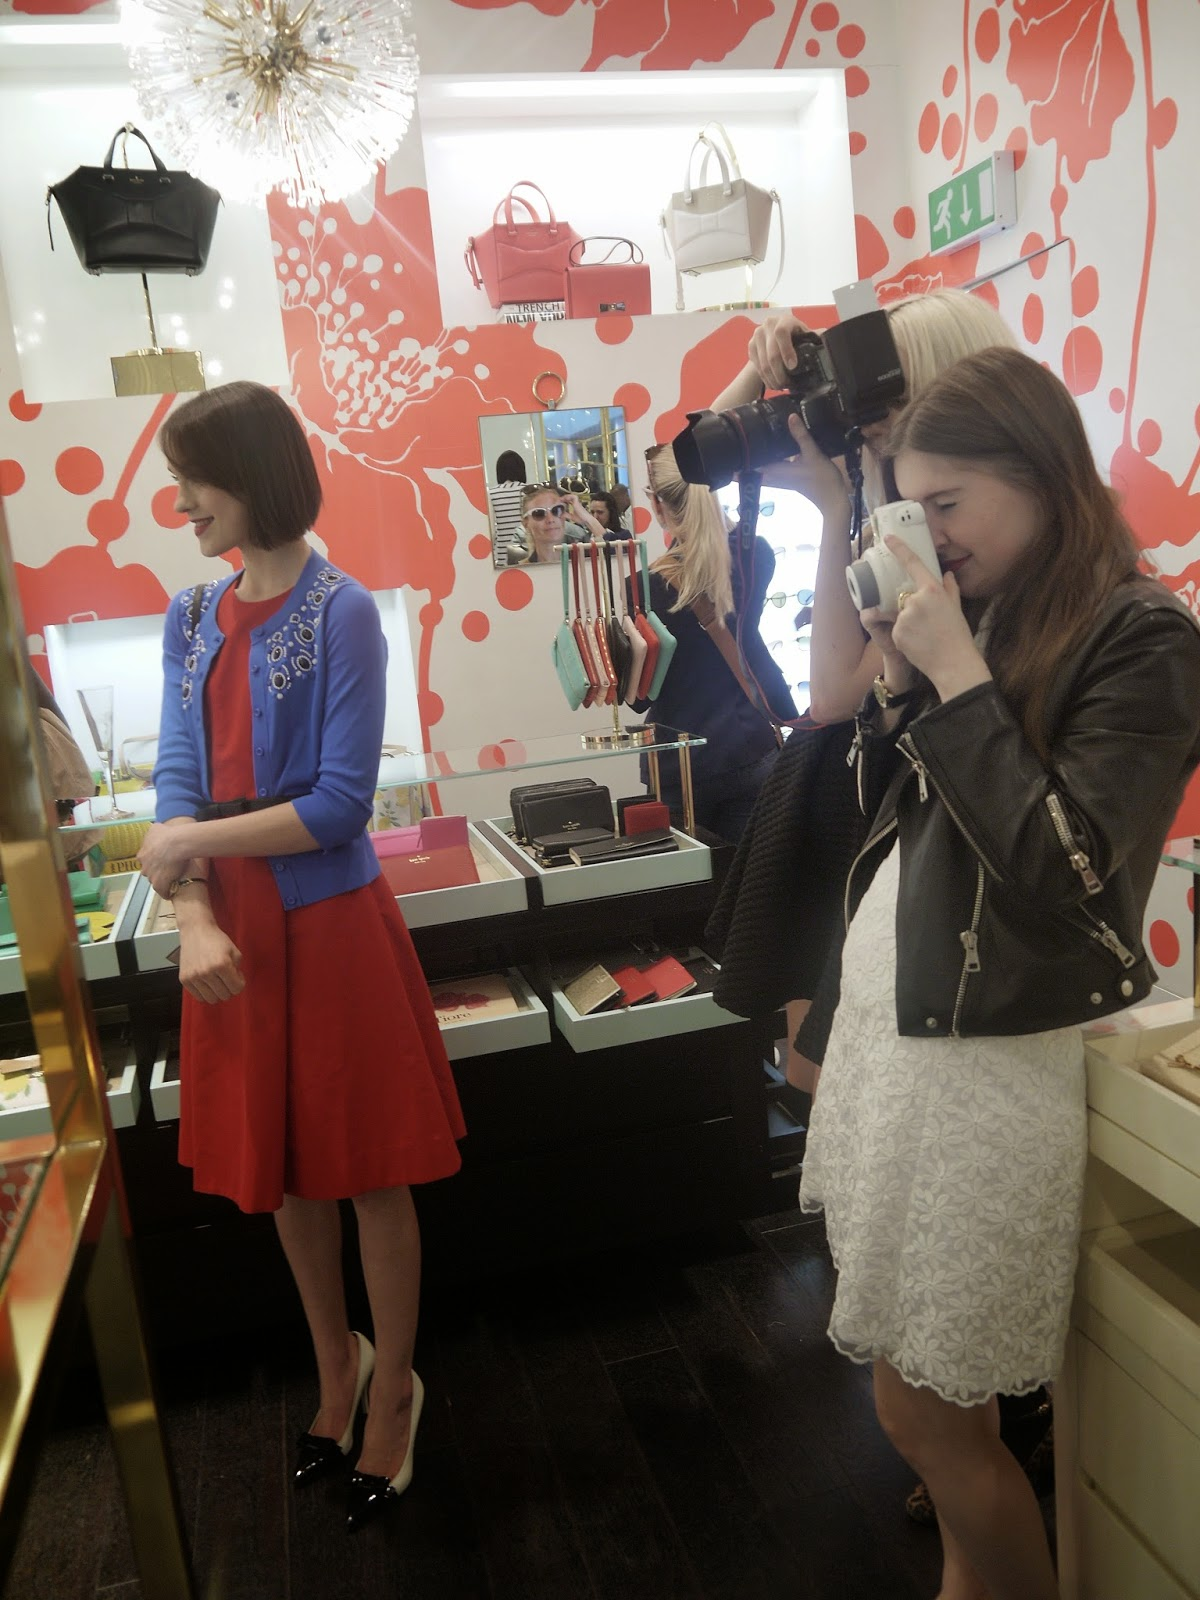 Ella Catliff and Holly McGlynn at the Kate Spade Event